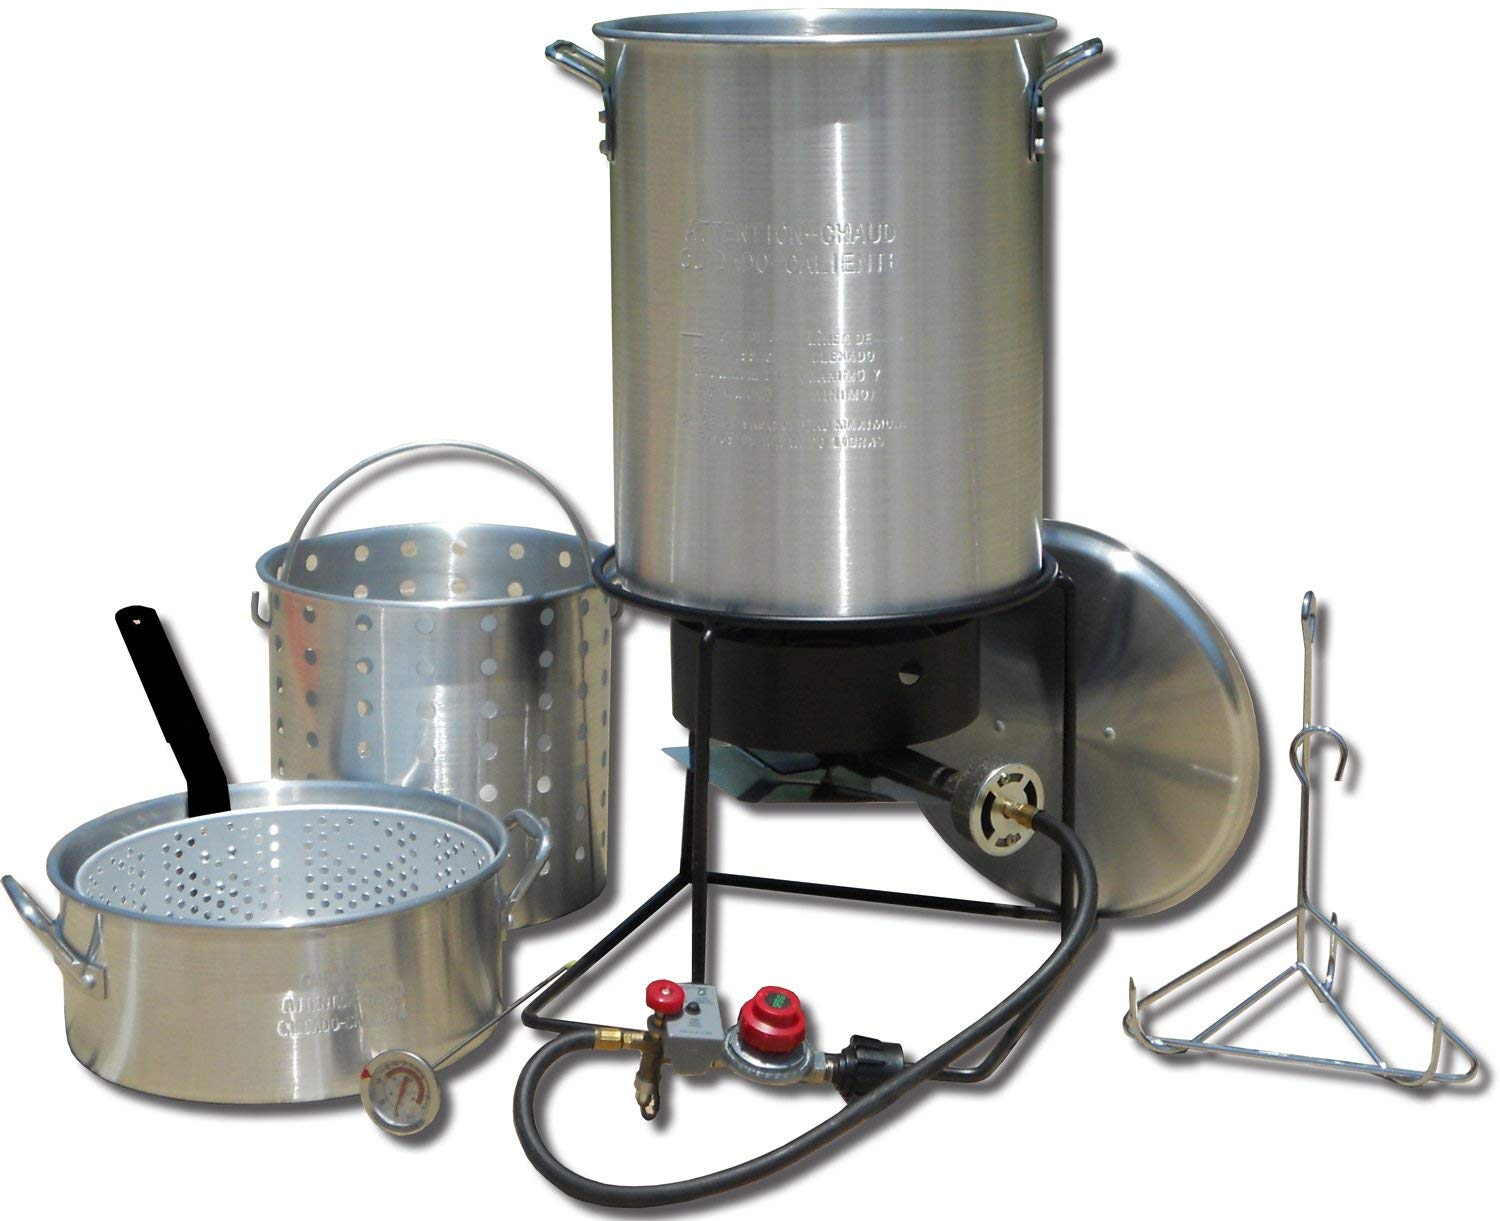 King Kooker 1265BF3 Portable Propane Outdoor Deep Frying/Boiling Package with 2 Aluminum Pots (Renewed)